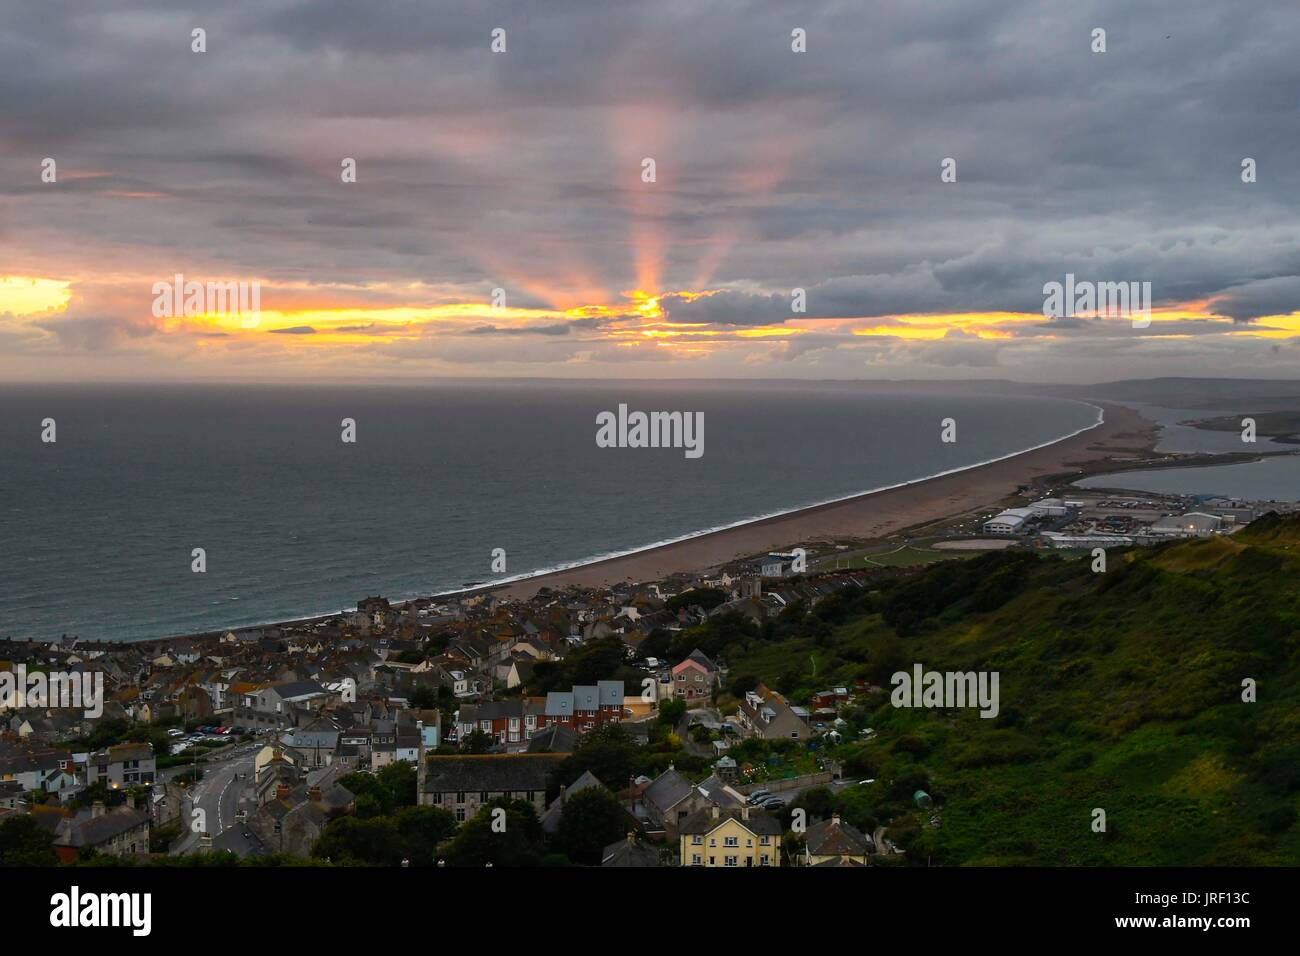 Portland, Dorset, UK.  4th August 2017.  UK Weather.  View of the sunset across Fortuneswell from The Heights on Stock Photo